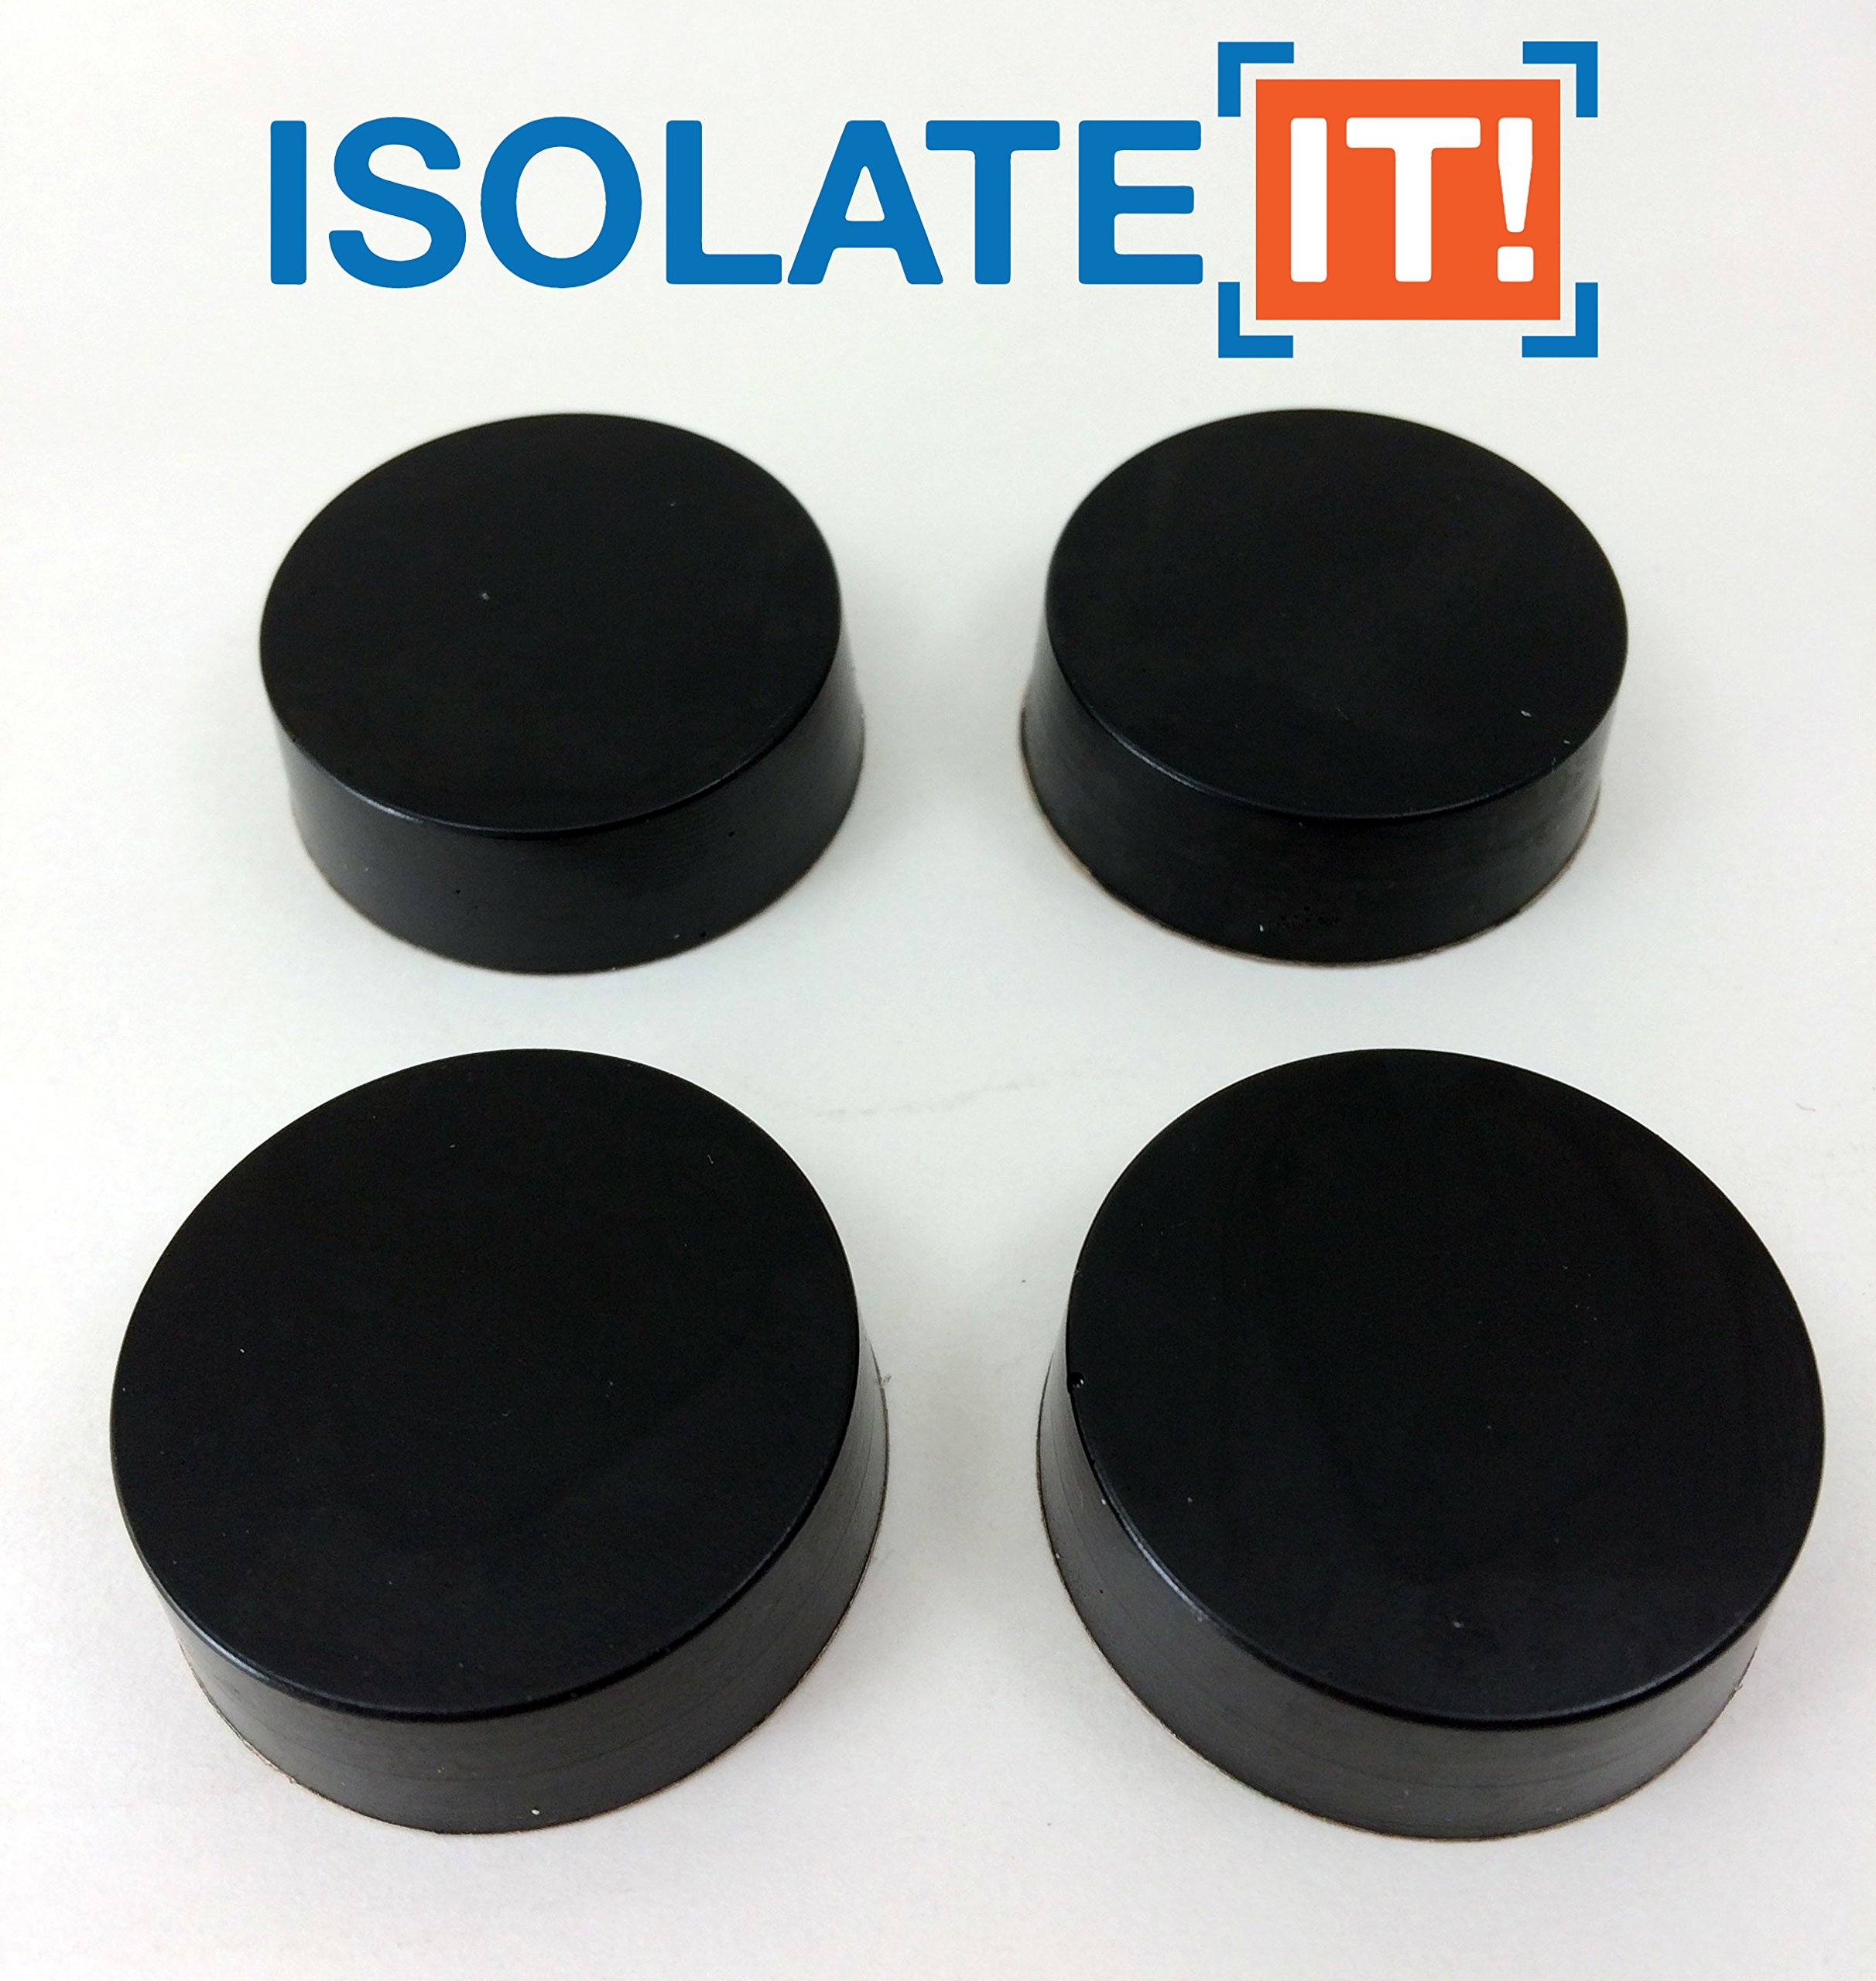 Isolate It!: Sorbothane Vibration Isolation Circular Disc Pad 0.5'' Thick 1.5'' Dia. 50 Duro - 4 Pack